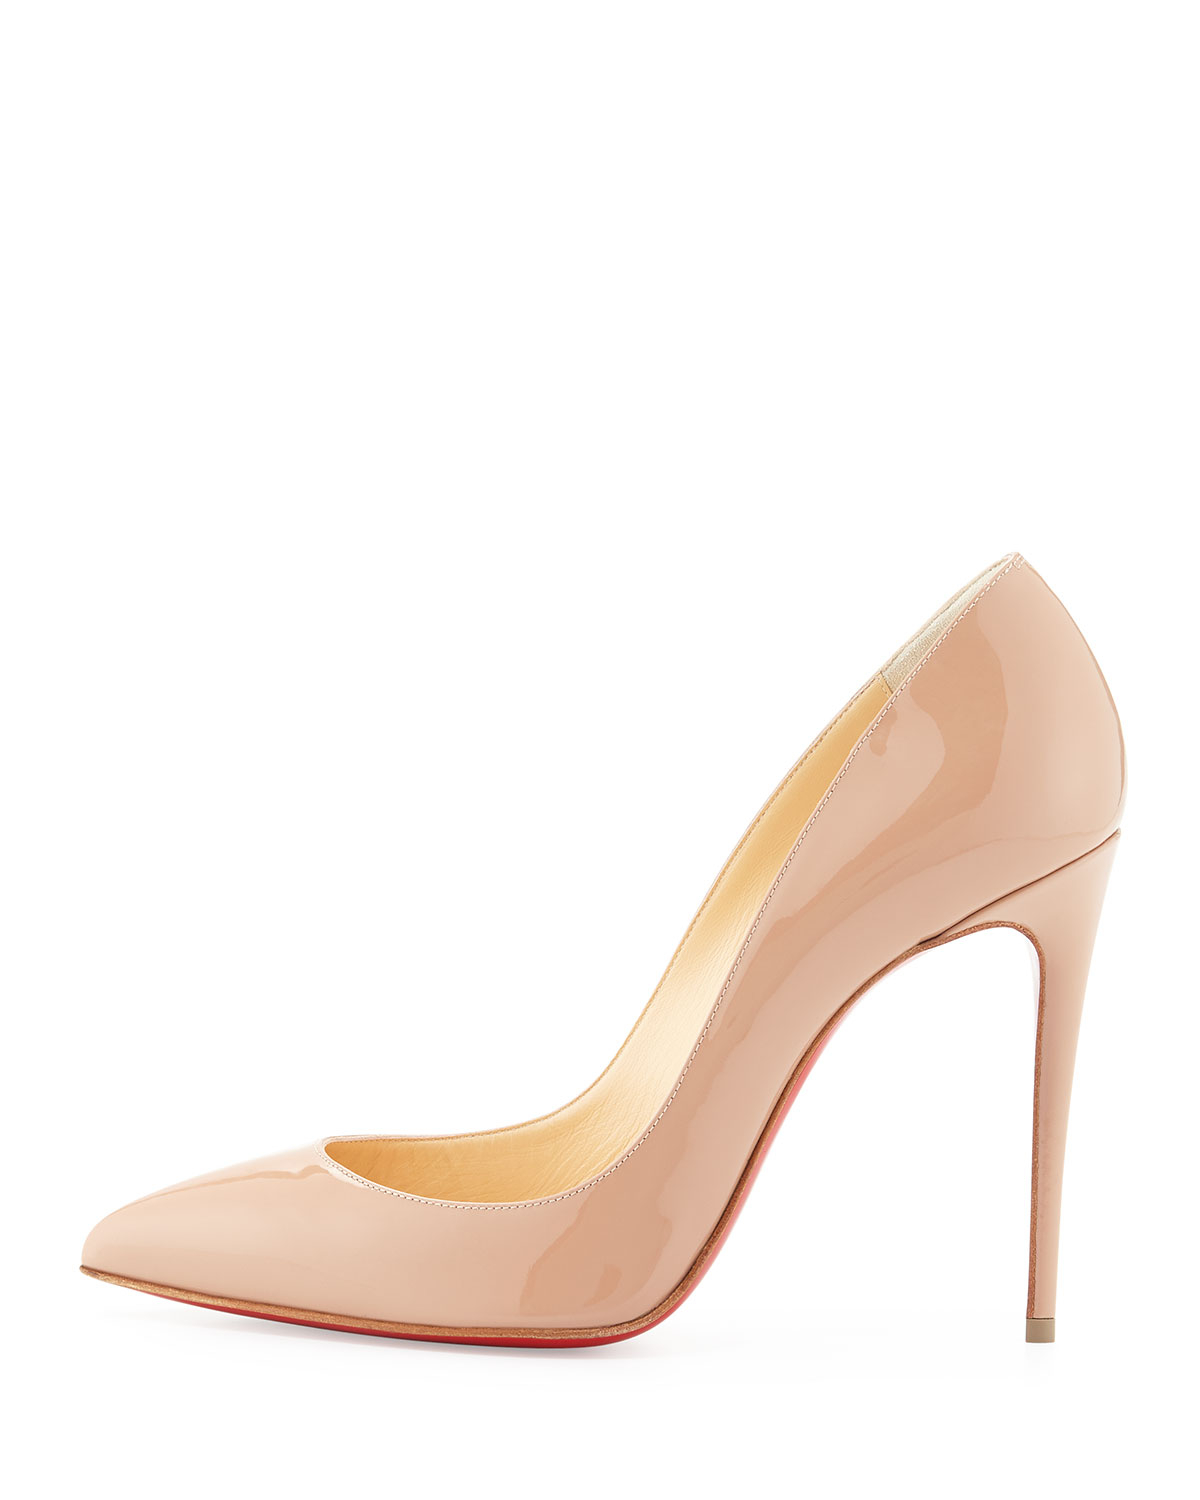 69e66708cd Gallery. Previously sold at: Bergdorf Goodman · Women's Christian Louboutin  Pigalle